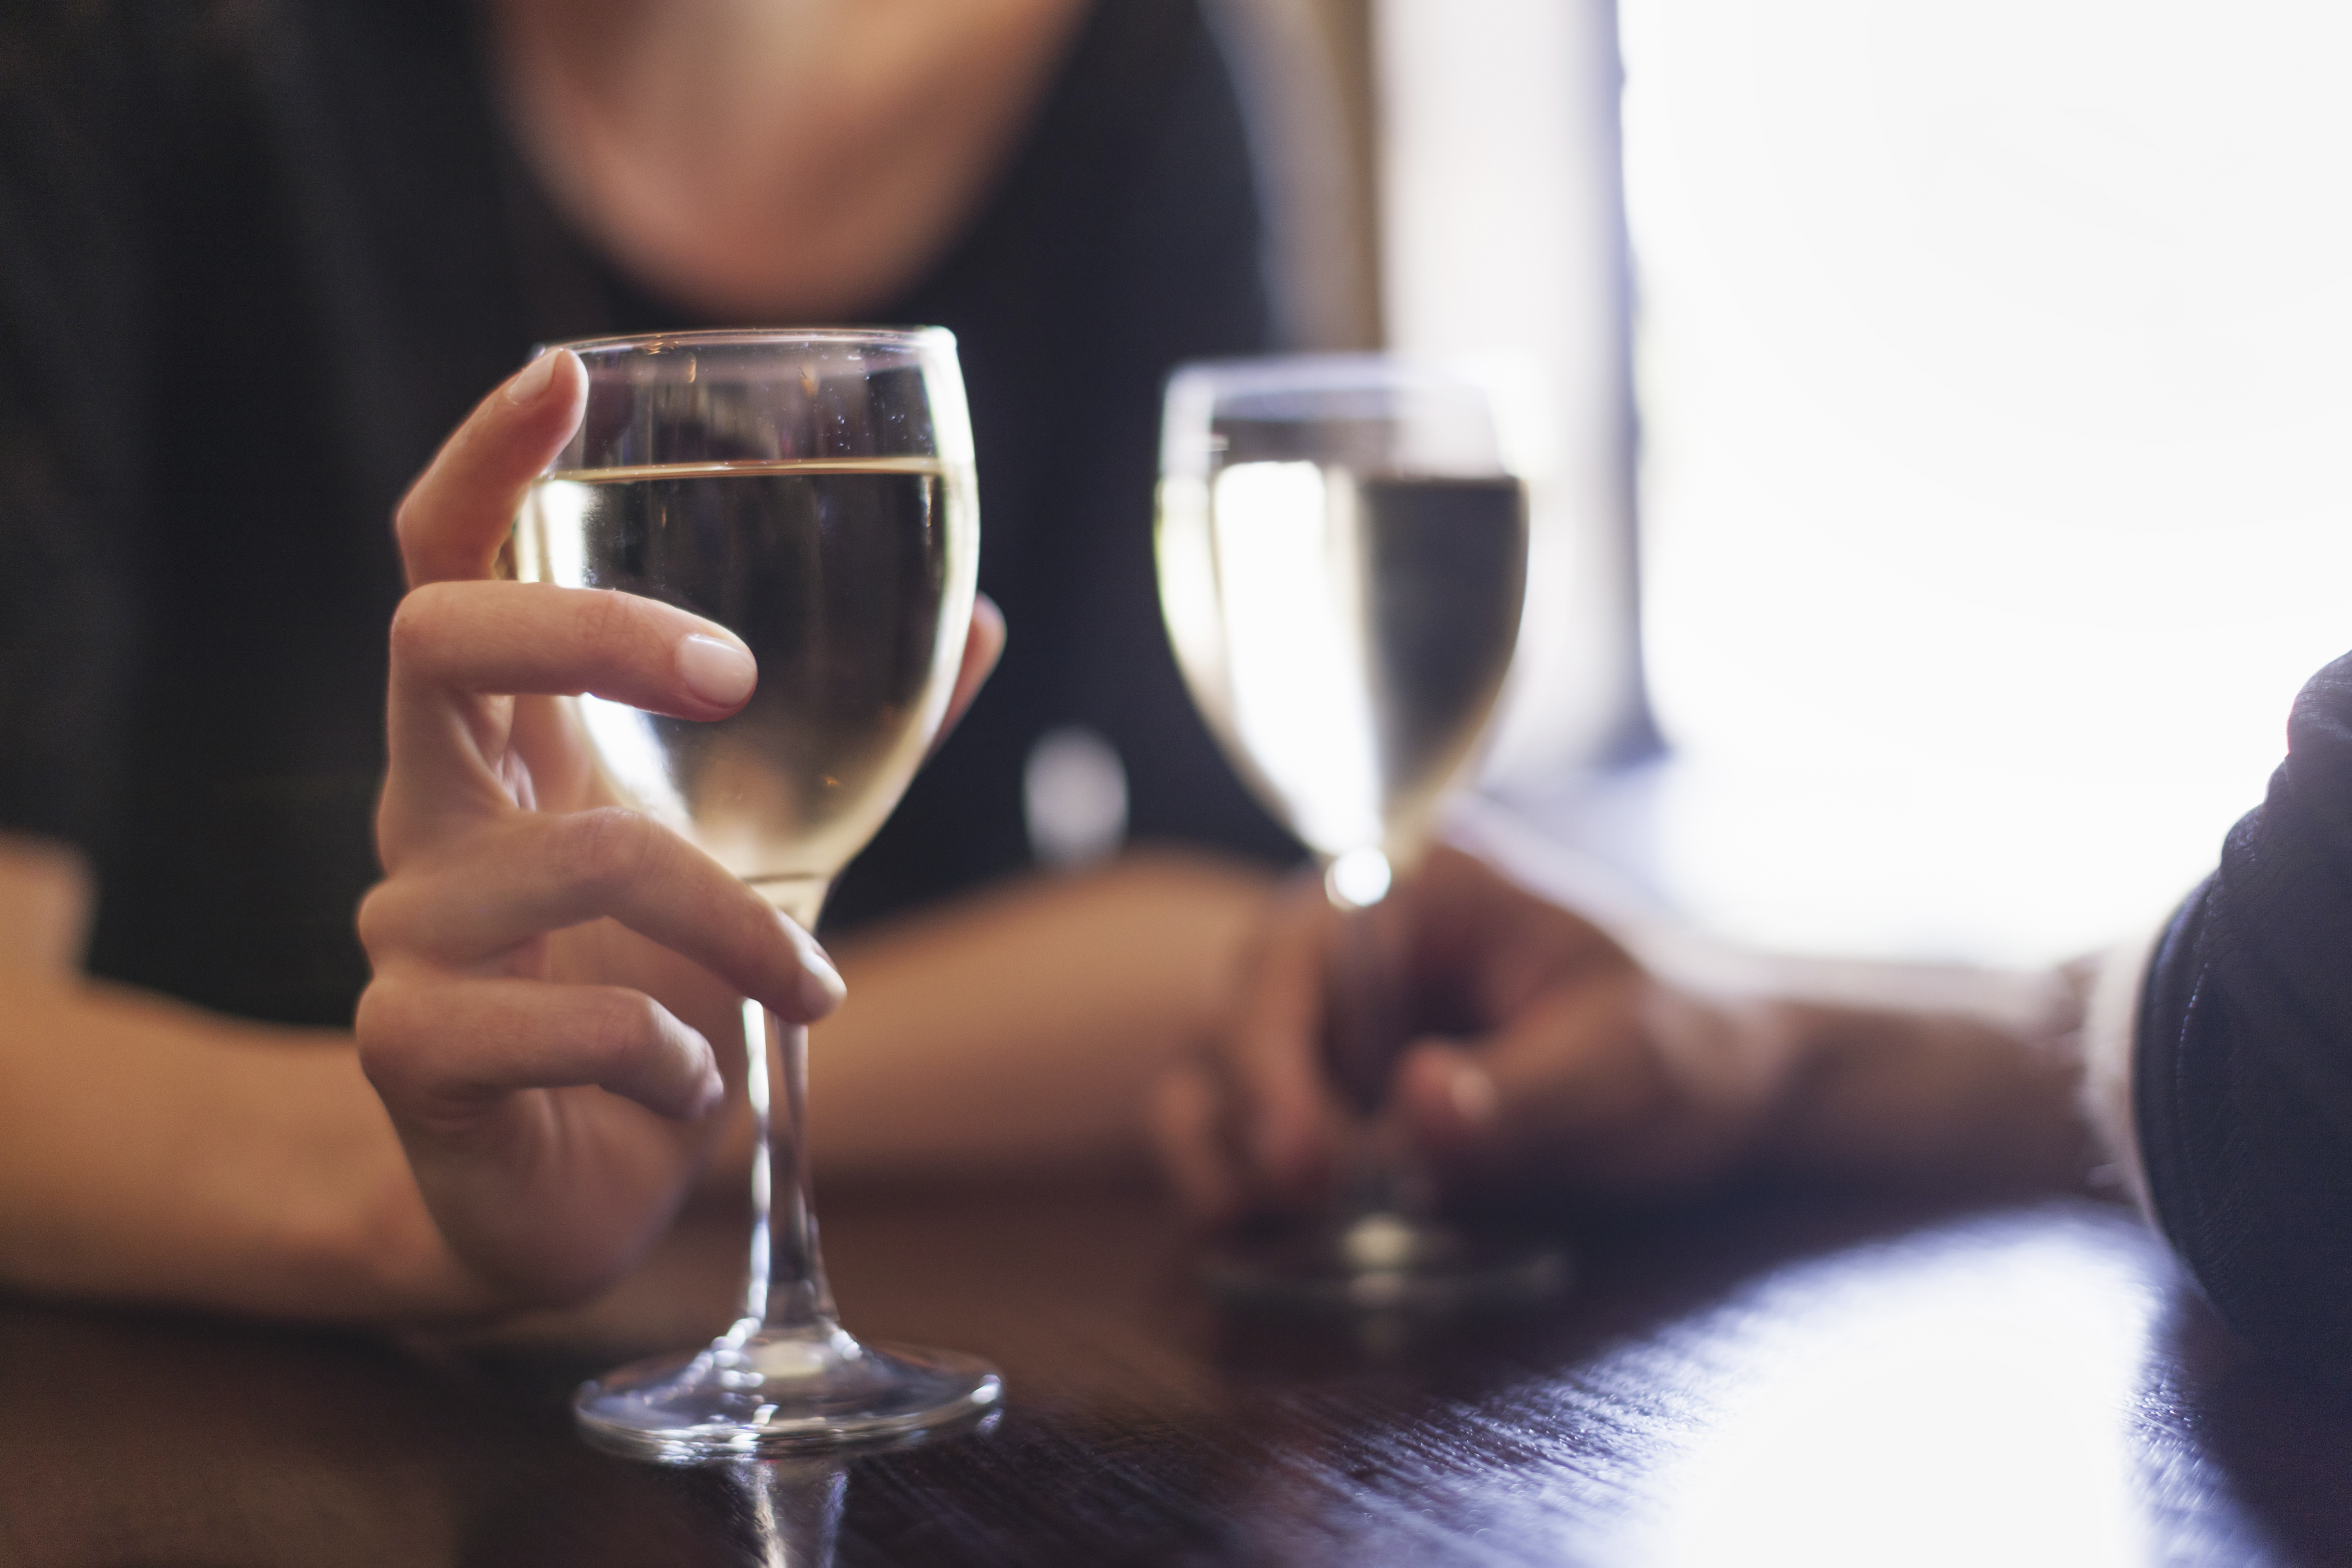 Two people, a couple sitting in a bar having a glass of chilled white wine.